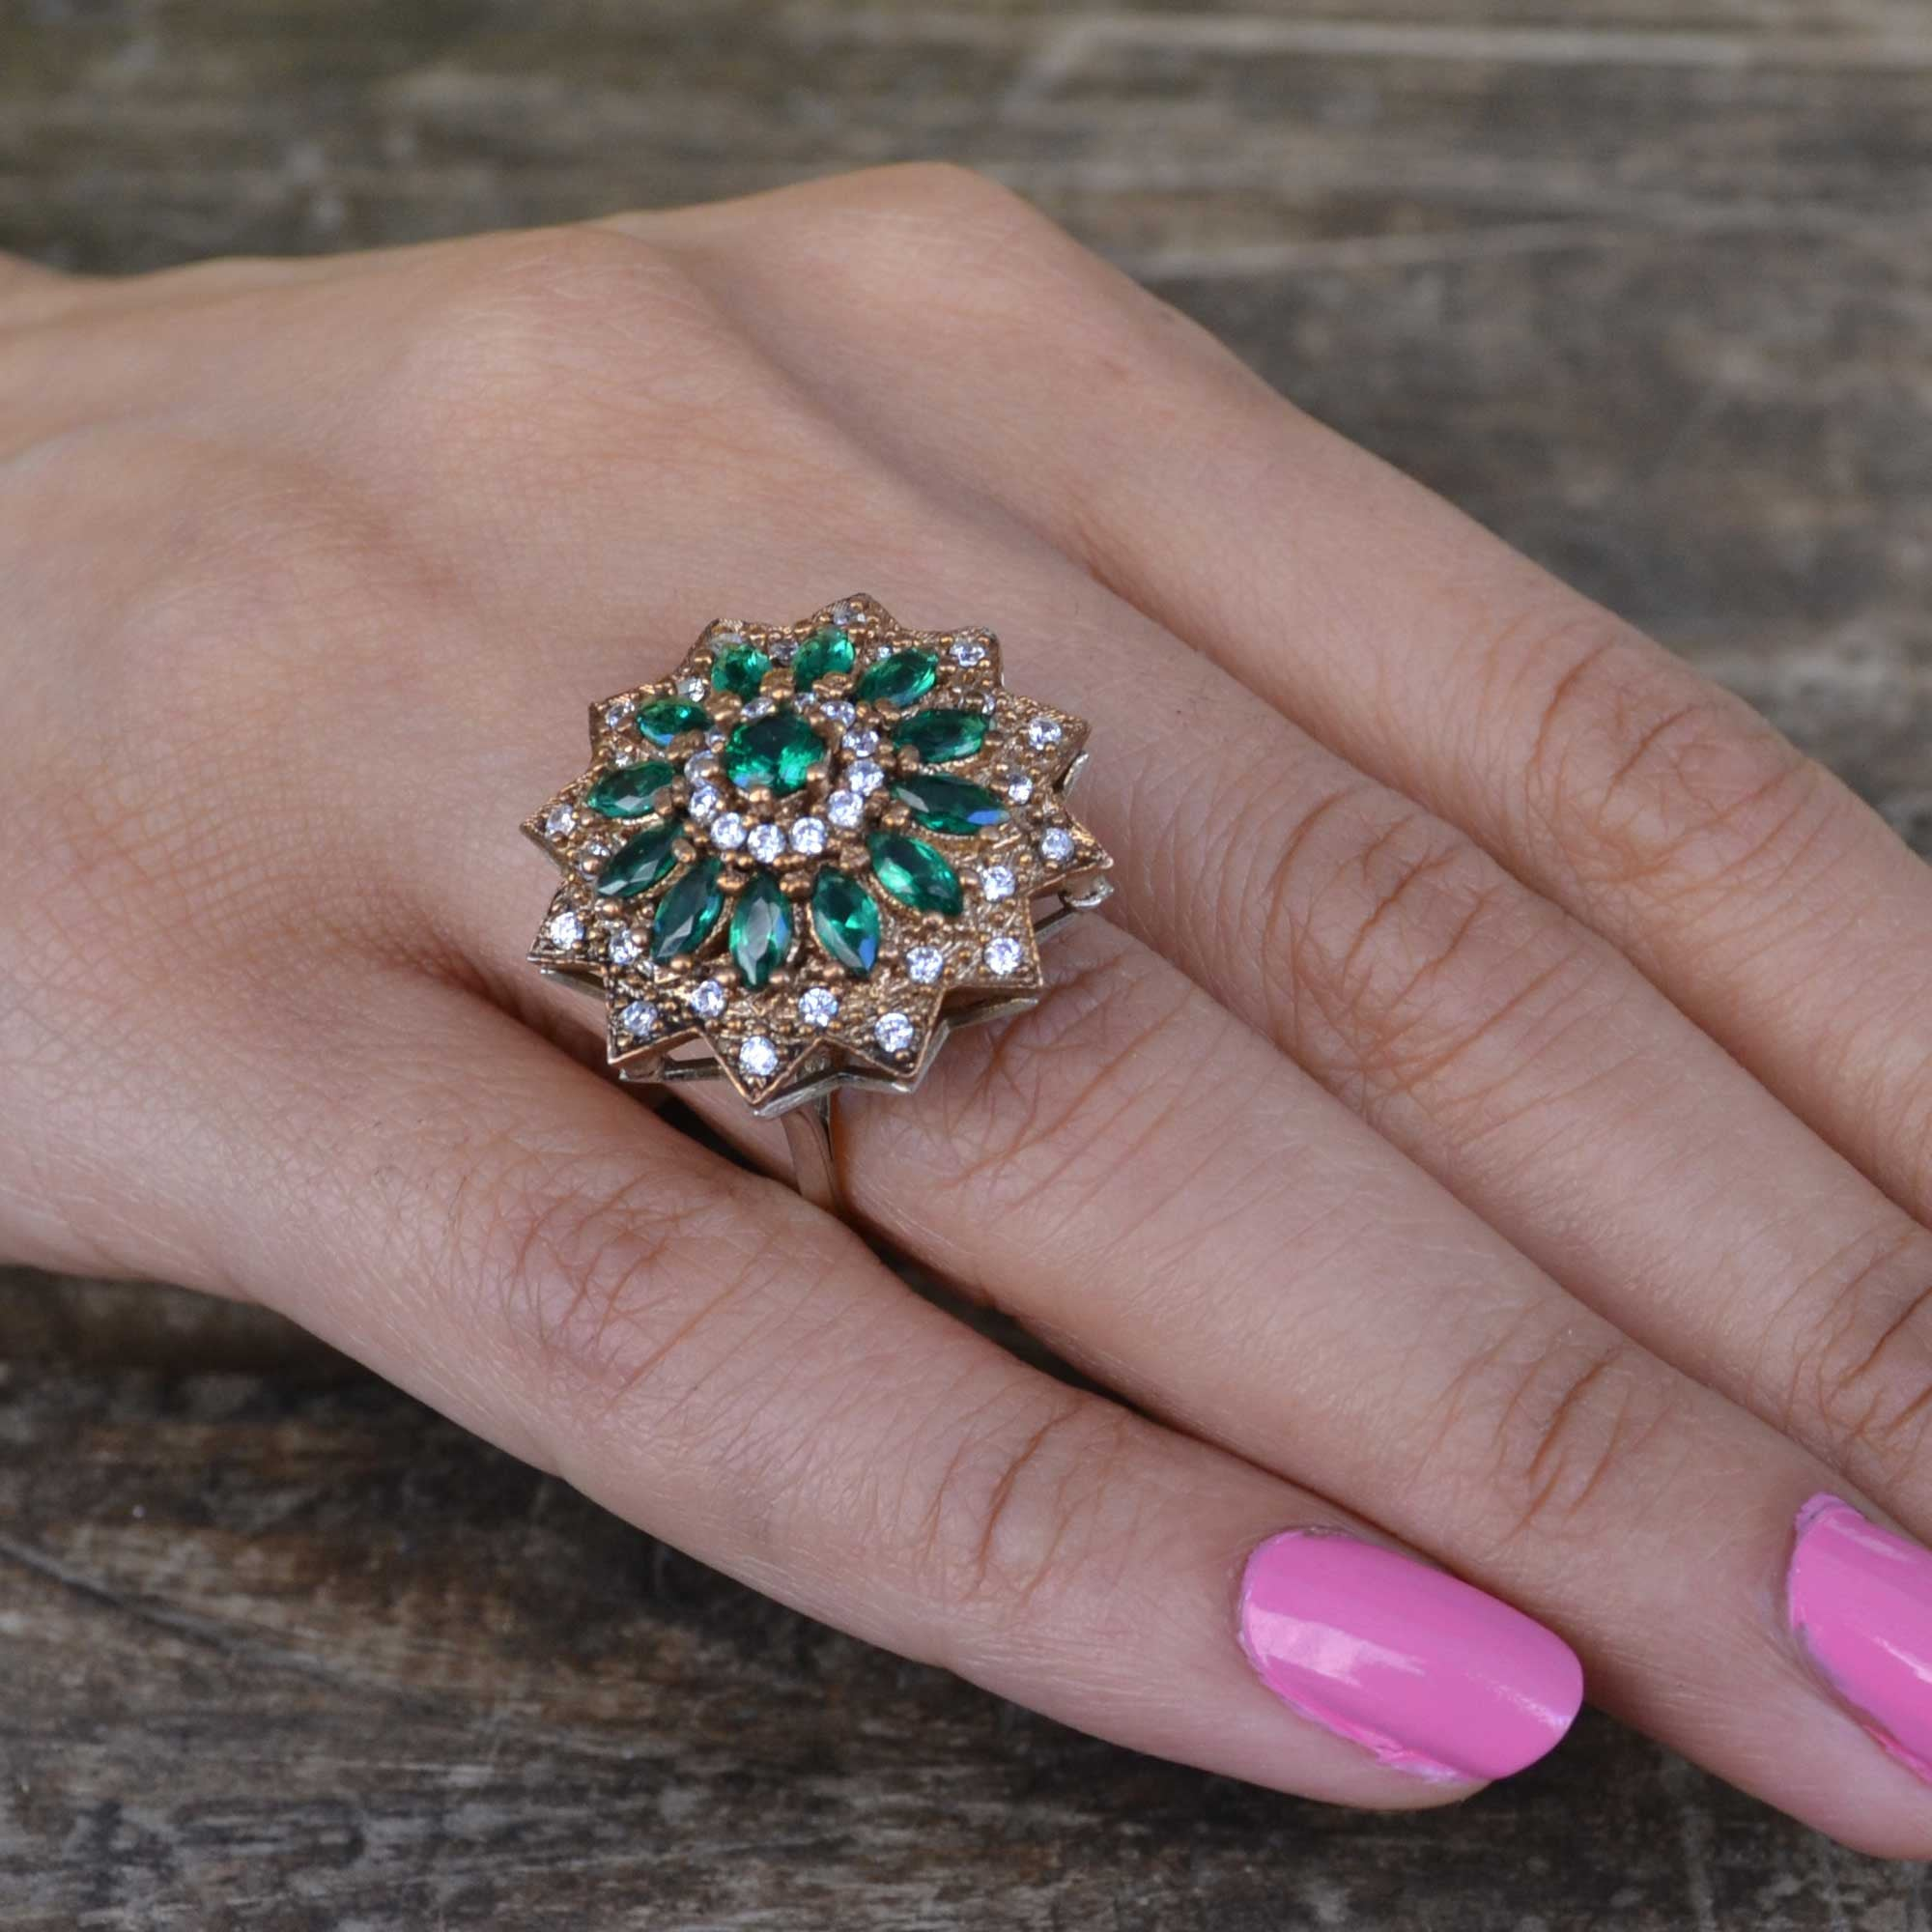 Details about  /Emerald Turkish Handmade Sterling Silver 925 Ring Vintage Style Round Size 6-11